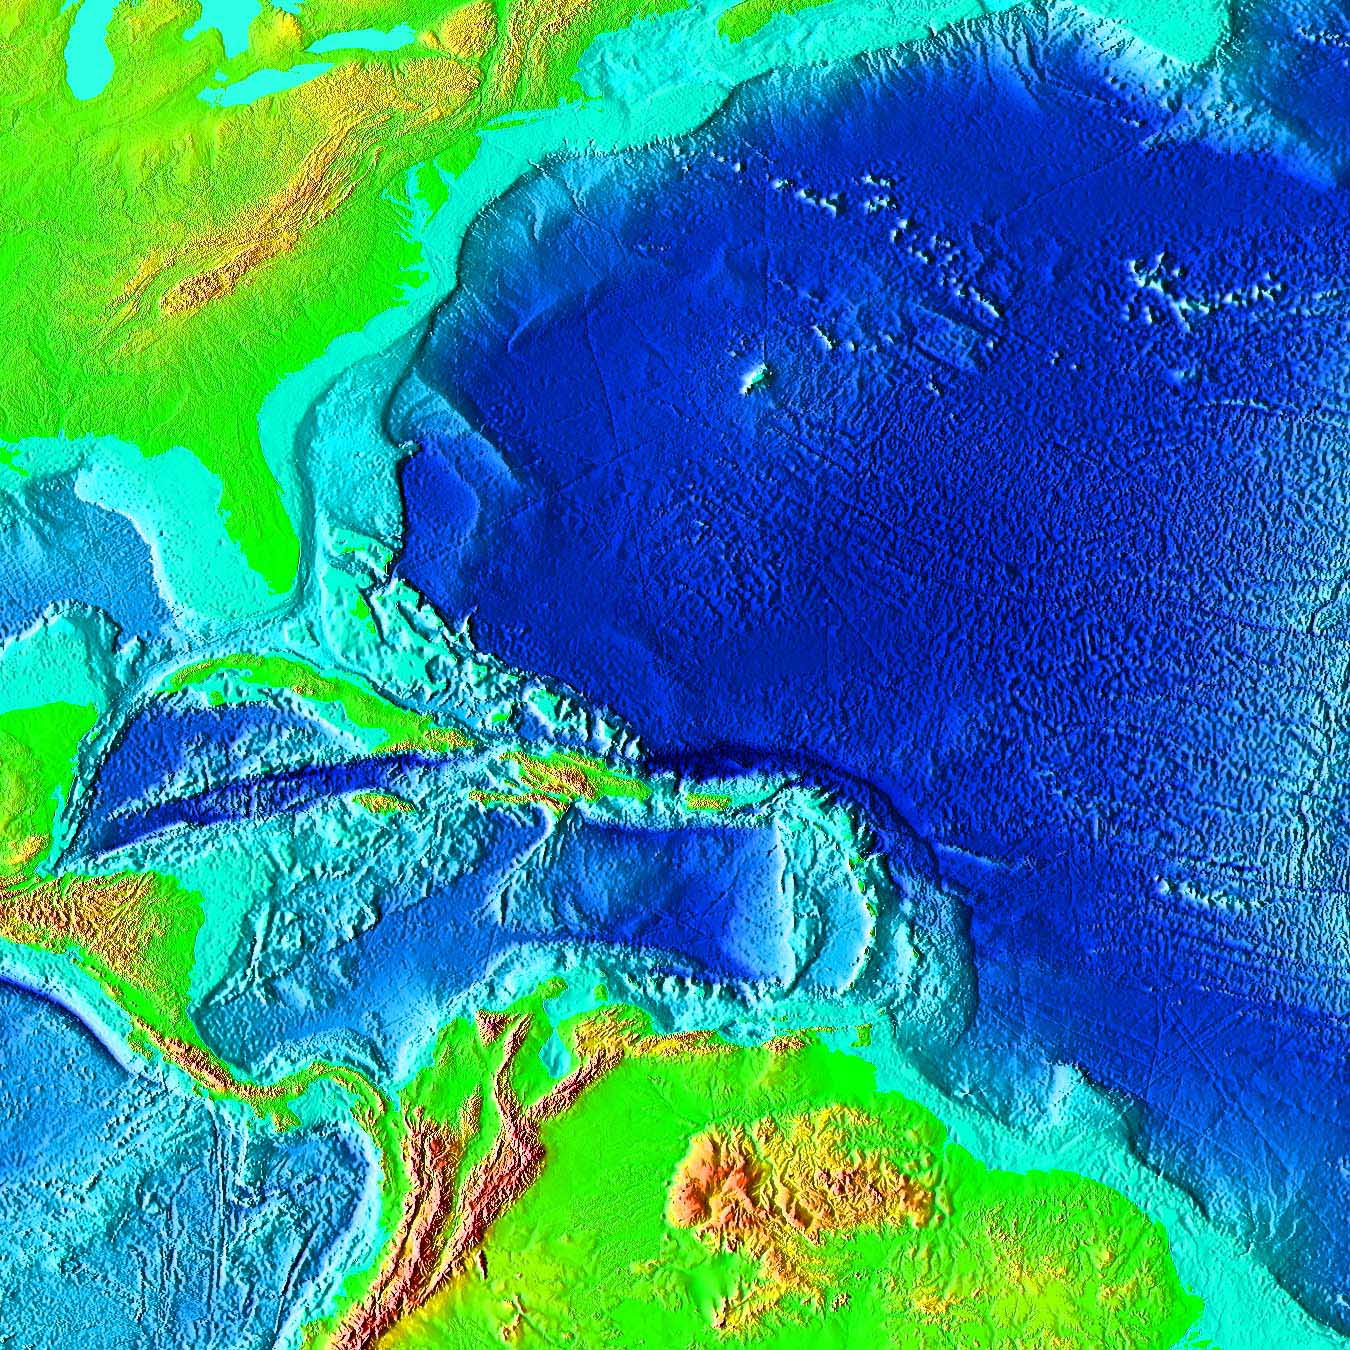 an analysis of the theories on the location of the lost continent of atlantis The 'lost' continent despite its clear origin in fiction, many people over the centuries have claimed that there must be some truth behind the myths, speculating about where atlantis would be found.